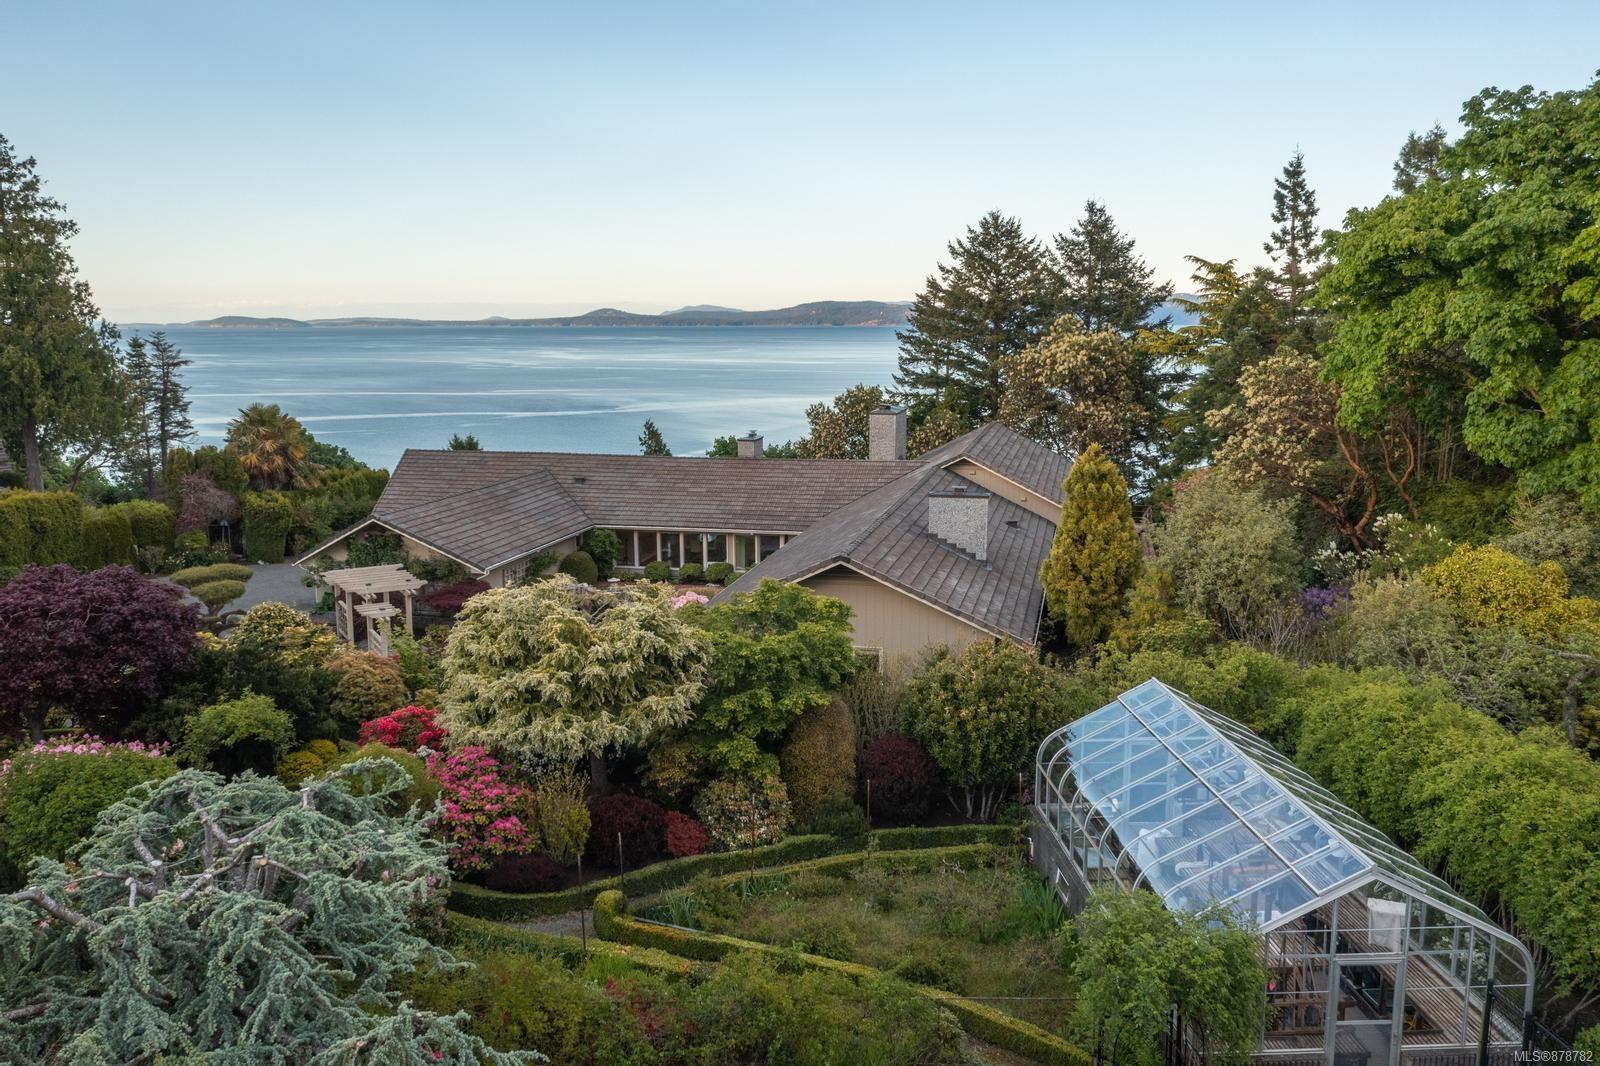 Welcome to 2282 Arbutus Road, a stunning estate-like property situated on 1.16-acres with sweeping ocean views of Haro Strait and the San Juan Islands. This meticulously landscaped property feels like a private retreat tucked away from the hustle and bustle of the city. Beautiful mature gardens create a sense of peace and tranquility as you pull up to this luxurious home. Built to the highest of standards, over 8000sq ft of living space is at your fingertips. Walls of windows allow the natural light to flow throughout the space, creating a feeling that can't be beat. Over 2900 sq ft of deck and covered patio space allow for year-round enjoyment. With a list of features too lengthy to list including a complete renovation top to bottom in 2001, not to be missed is the great room, wet bar, formal living room, family room w/vaulted ceilings, 3 water features, & greenhouse. Located a stone's throw to some of Victoria's best beaches, UVic, Cadboro Bay, & 15 mins to downtown Victoria.